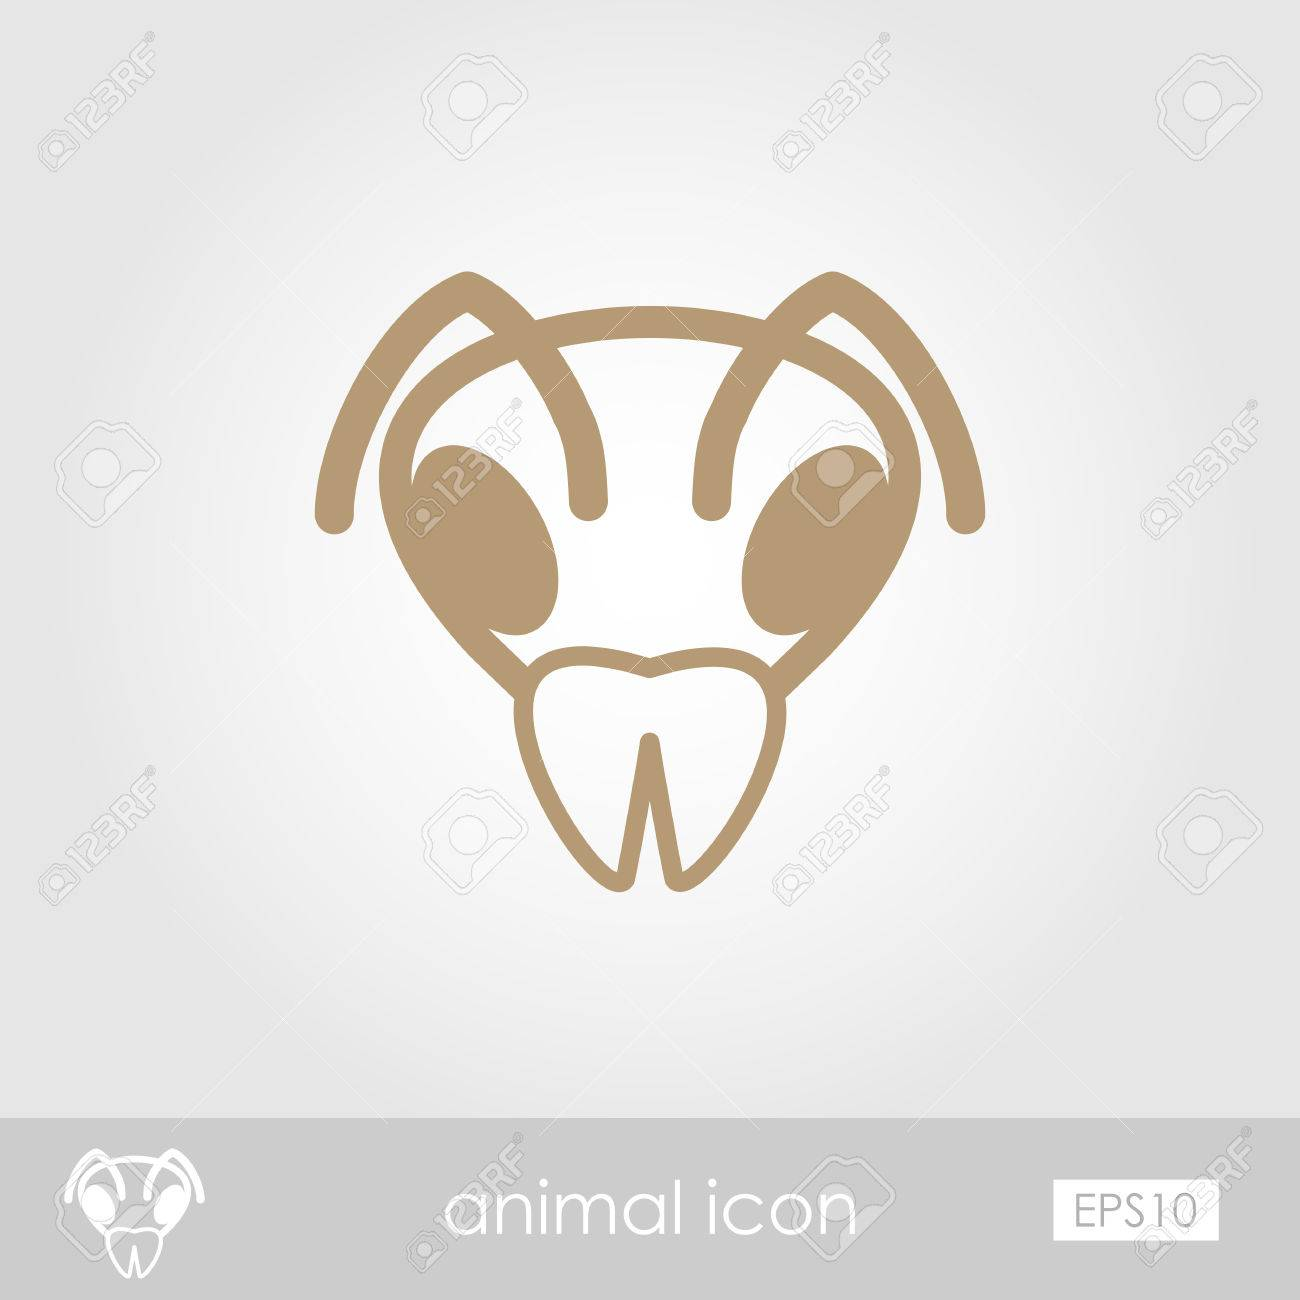 Bee wasp bumblebee outline thin icon animal head vector symbol bee wasp bumblebee outline thin icon animal head vector symbol eps 10 stock vector biocorpaavc